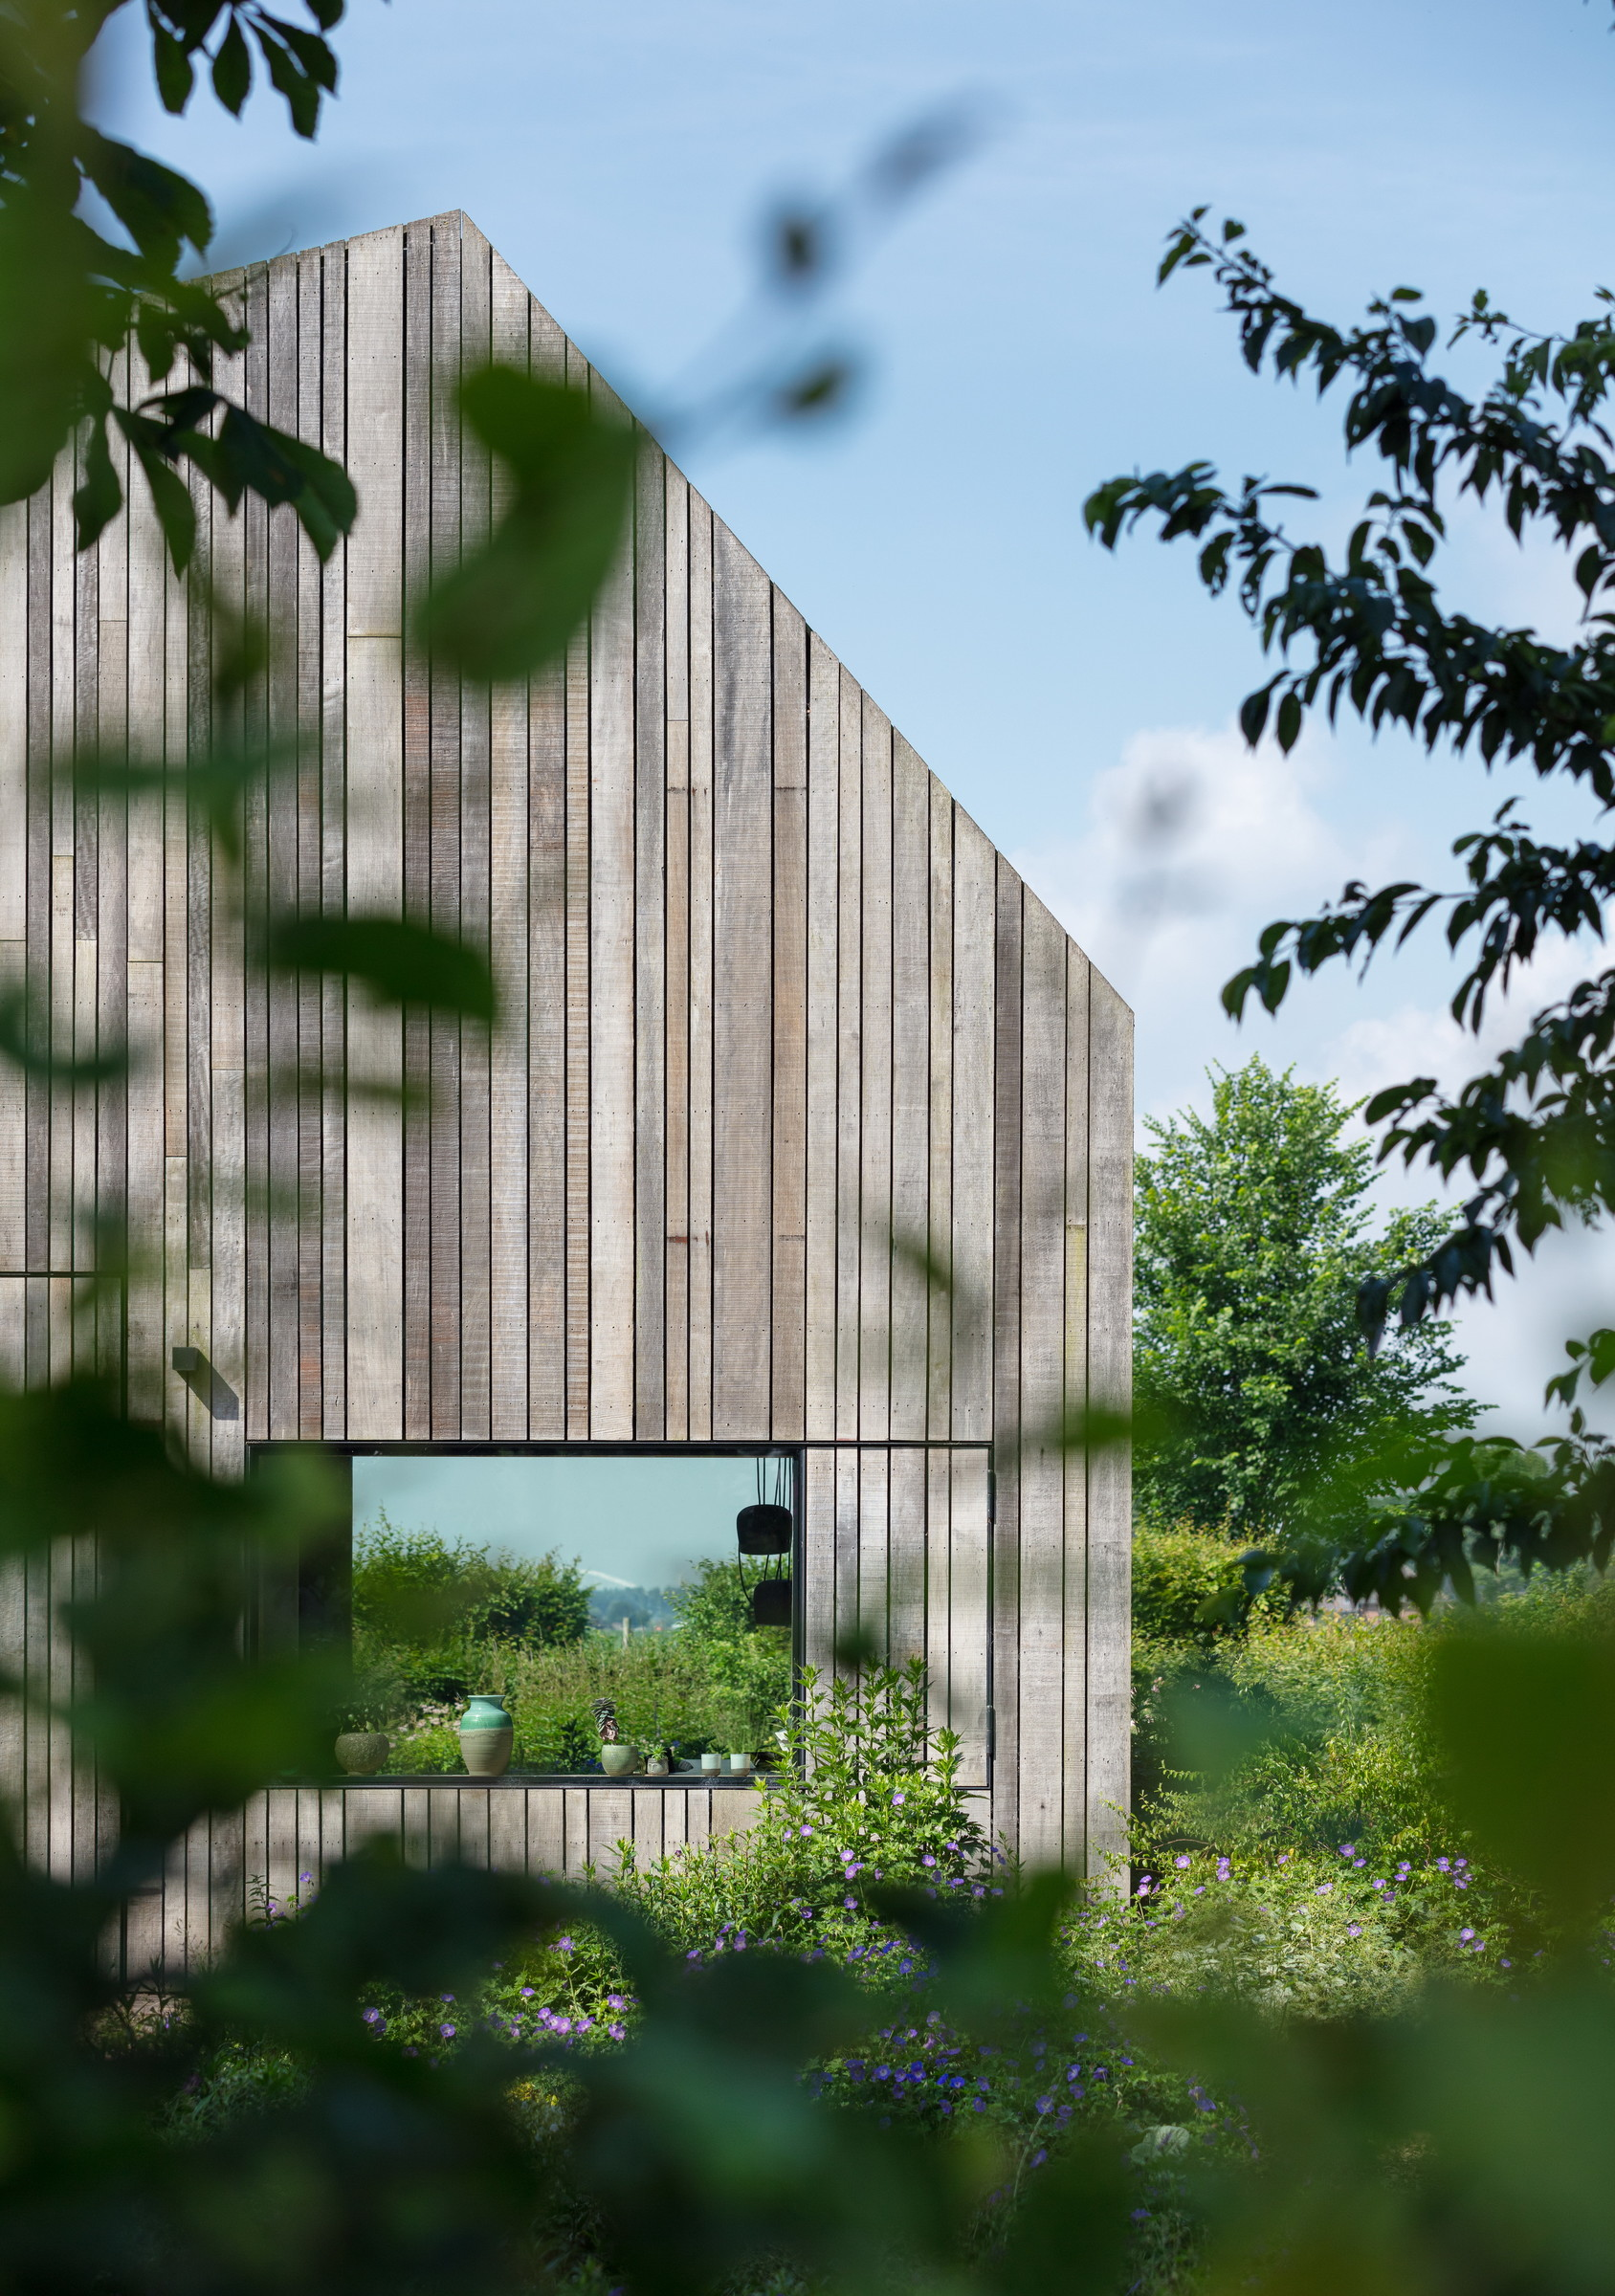 08-Zecc_Architecten-Farm_house-Utrecht-wood-concret.JPG